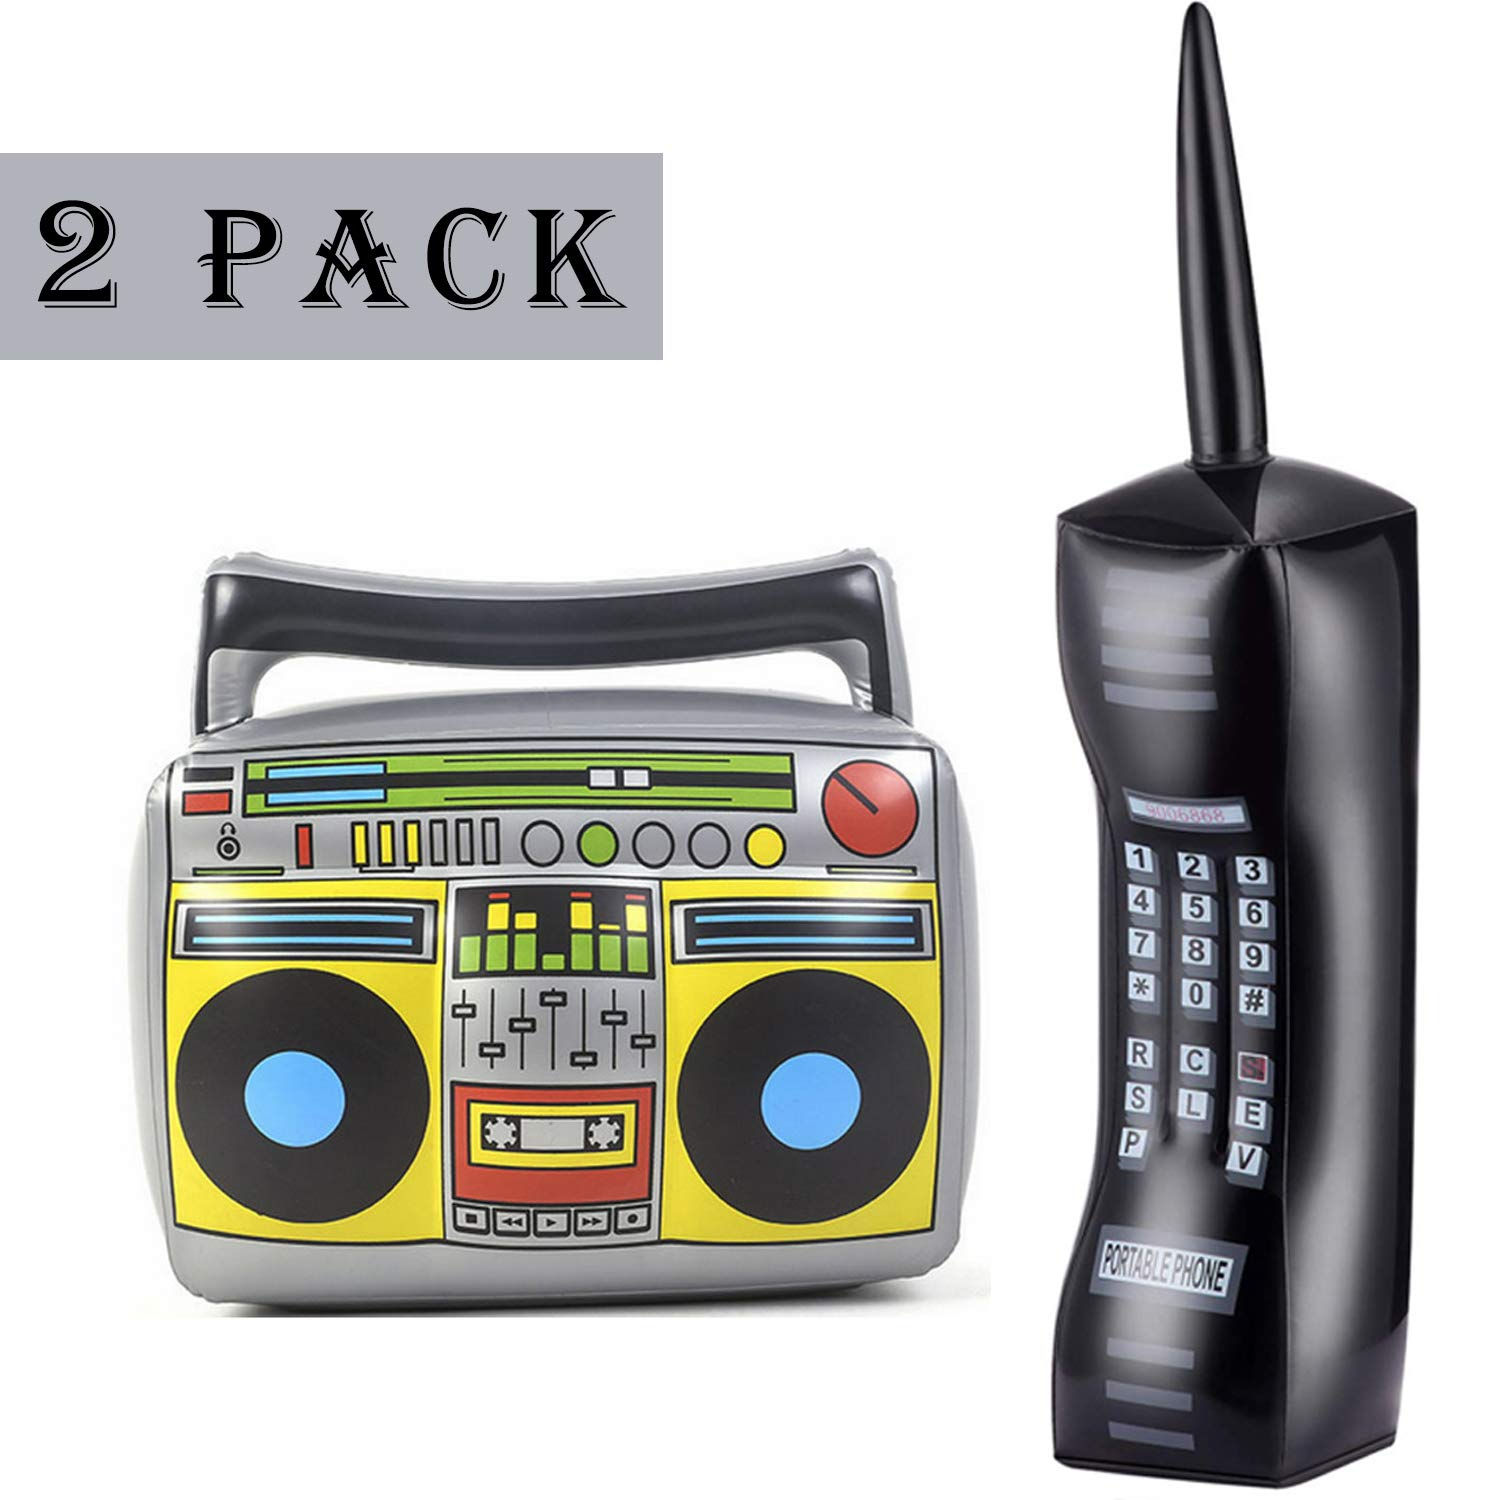 2PCS Inflatable Radio Boombox Inflatable Mobile Phone - Inflatable Props for 80s 90s Party Decorations